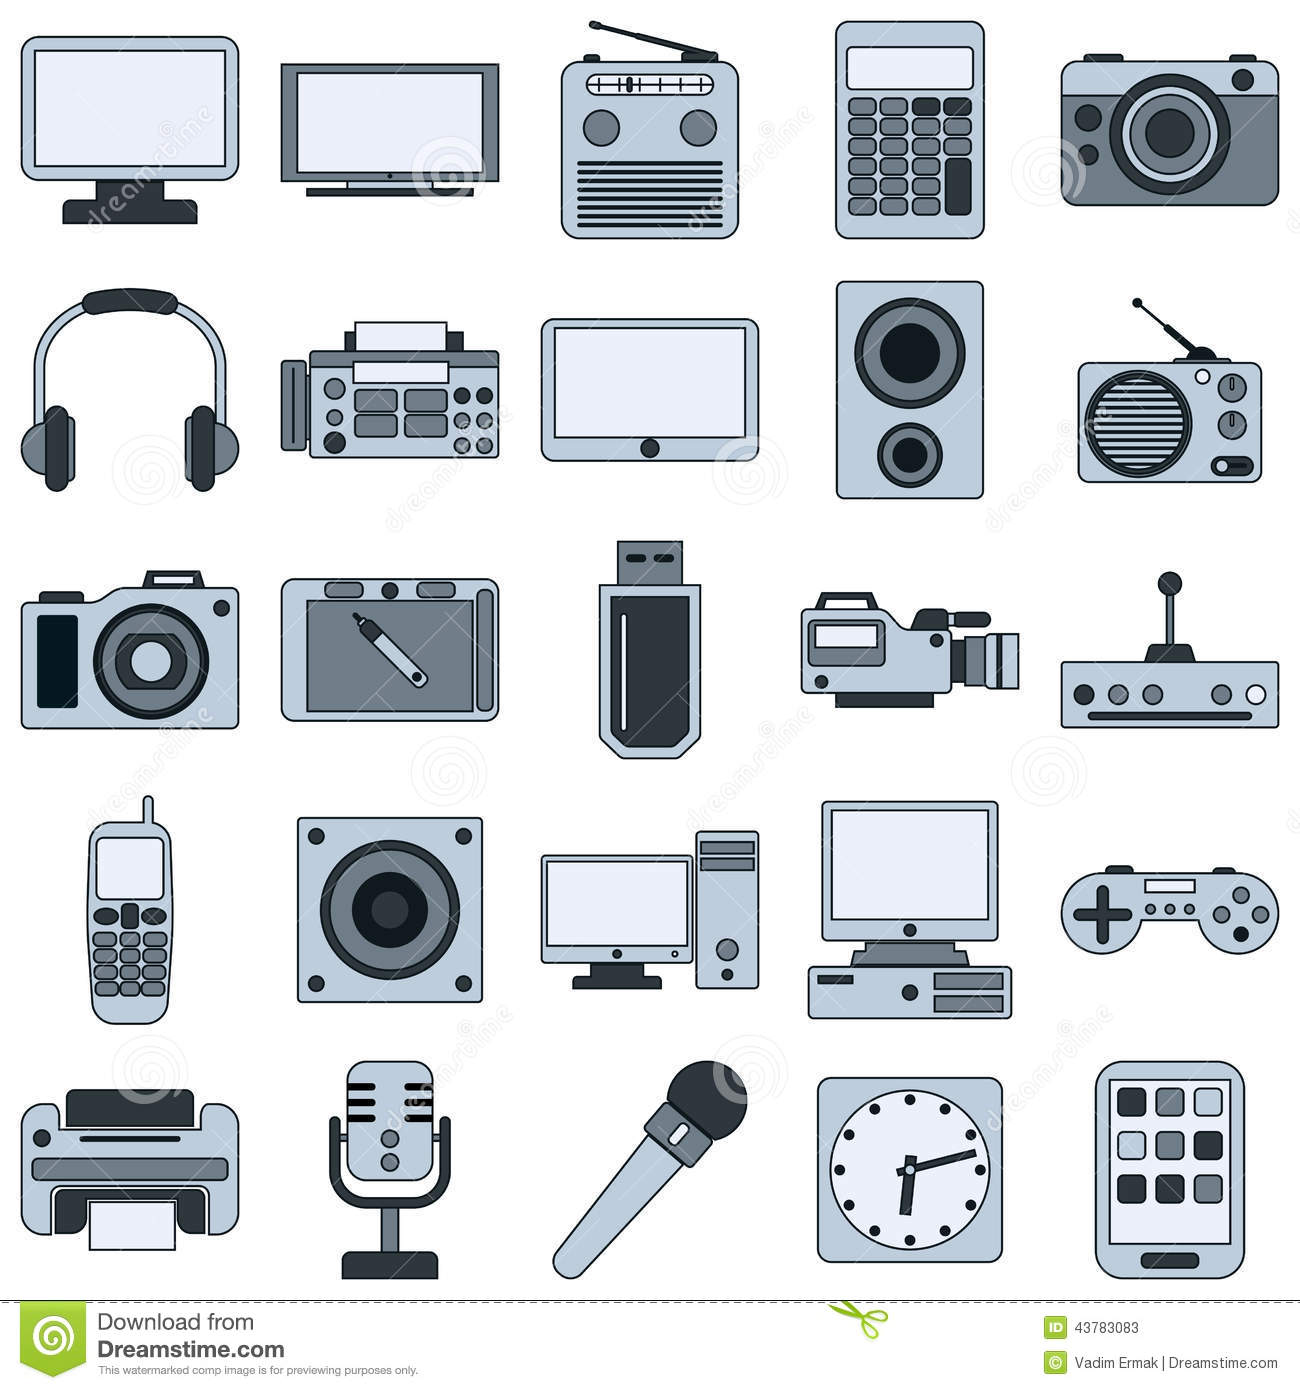 Electronic Timing Devices : Modern electronic devices vector icons stock